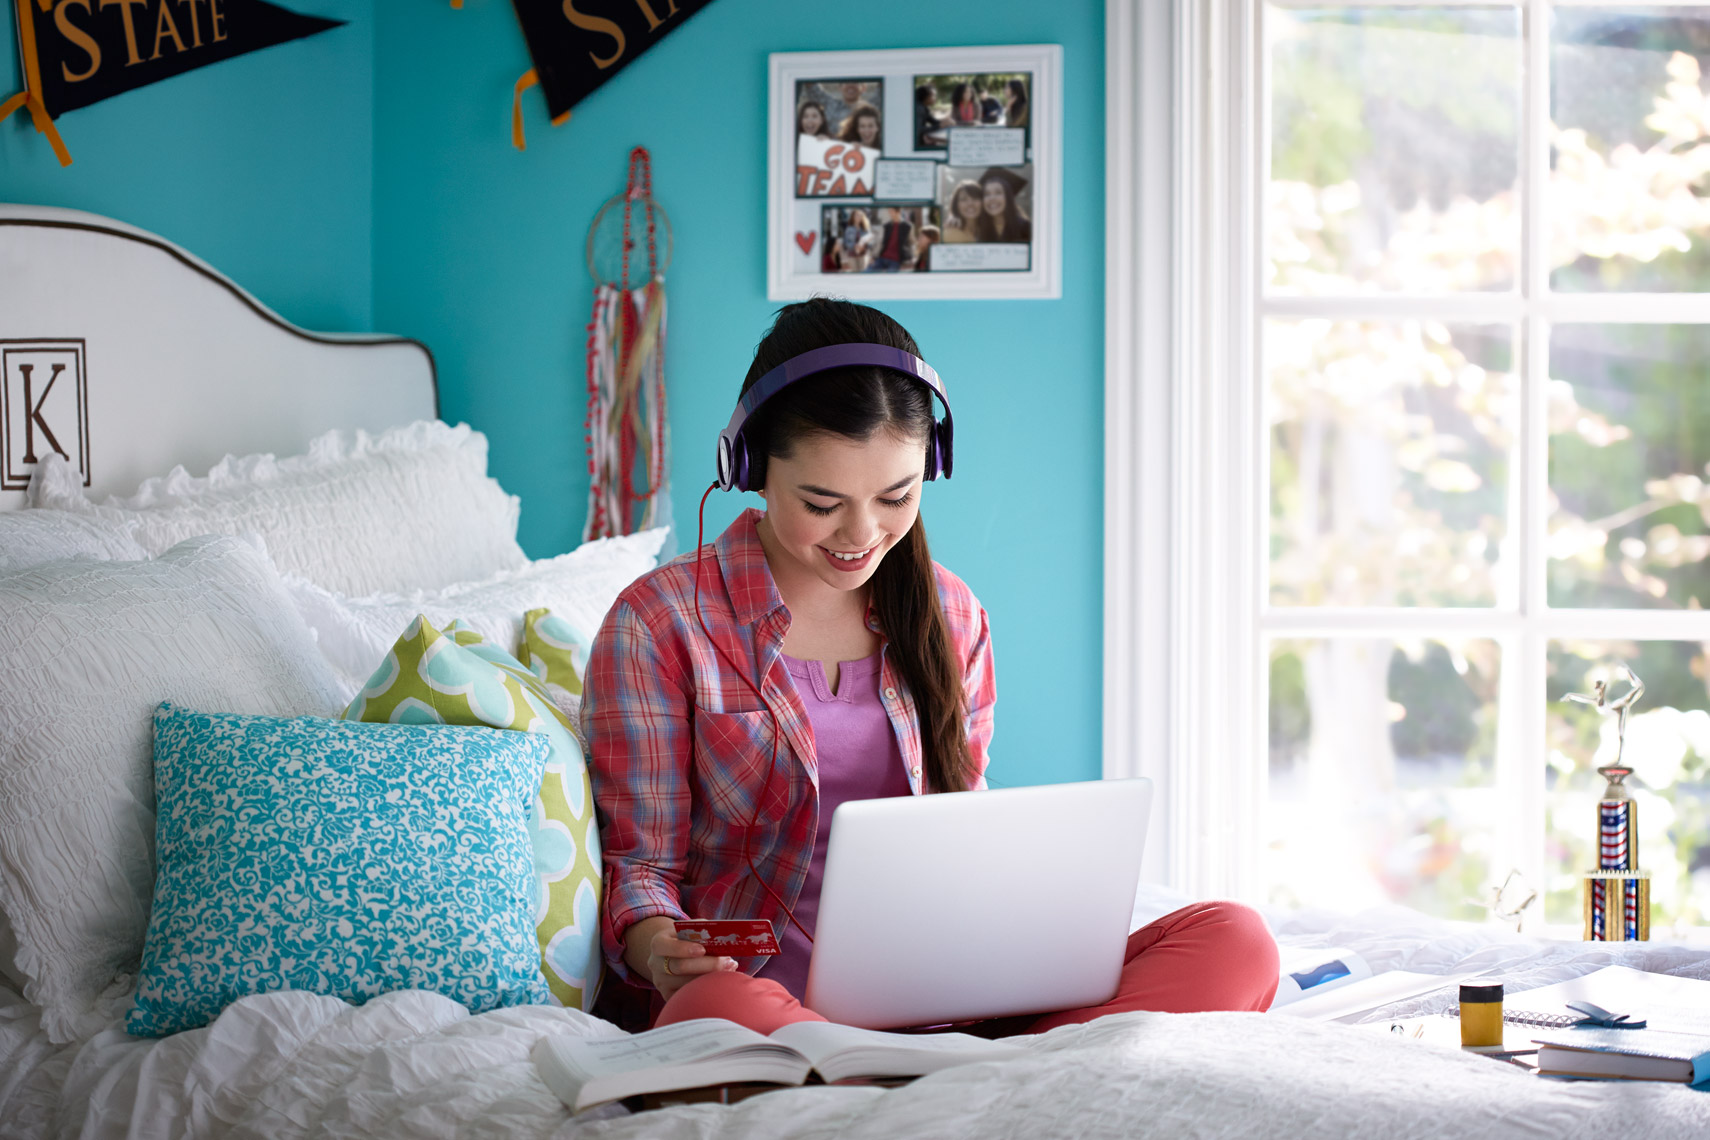 lifestyle photographer, advertising photographer, teenager in room, girl with headphone, listening to music, blue room, bedroom, girl in bed with laptop computer